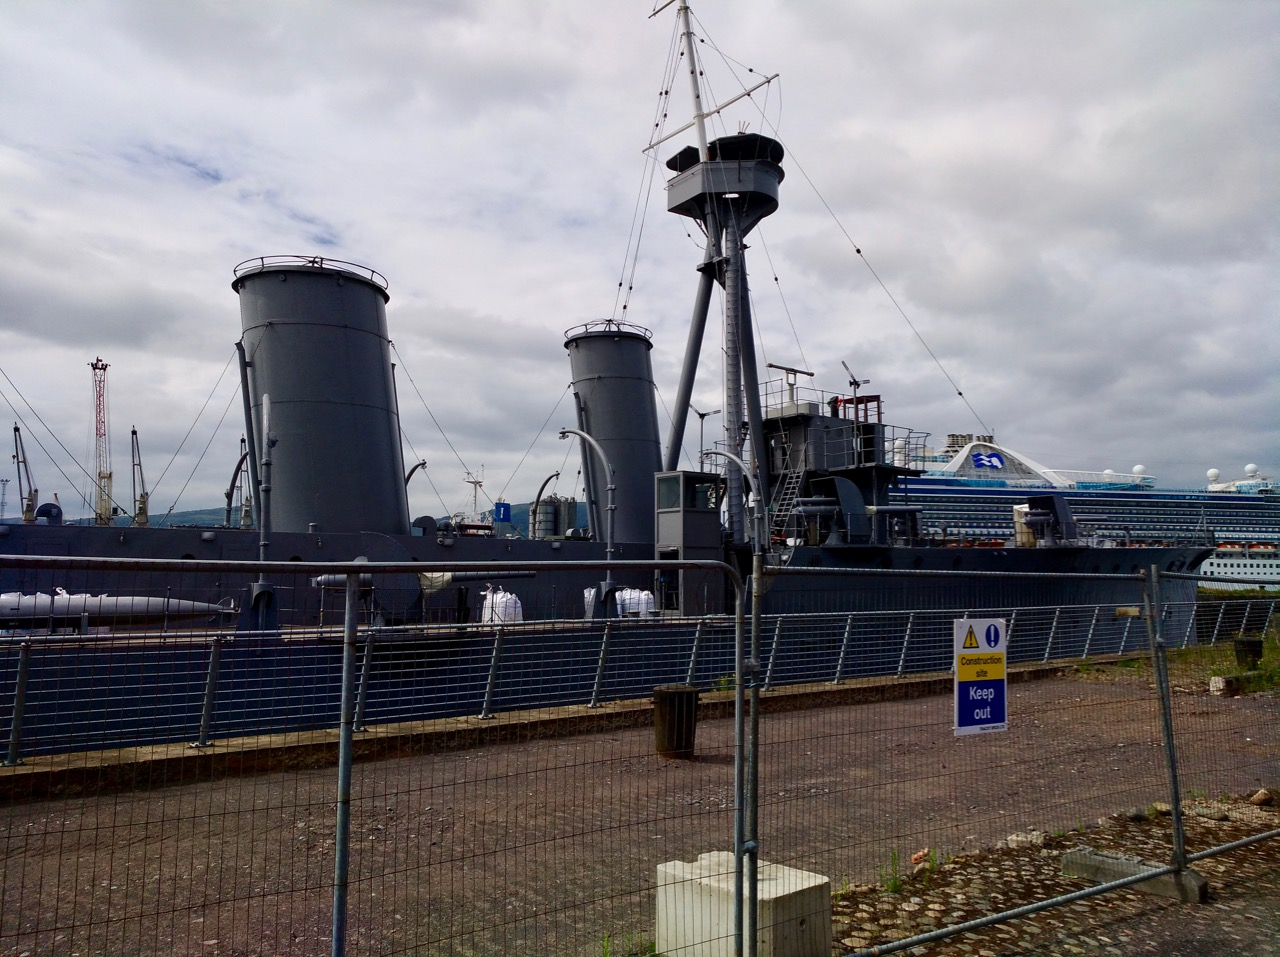 The Wee Tram Tour - Visiting the Titanic Museum in Belfast (5)